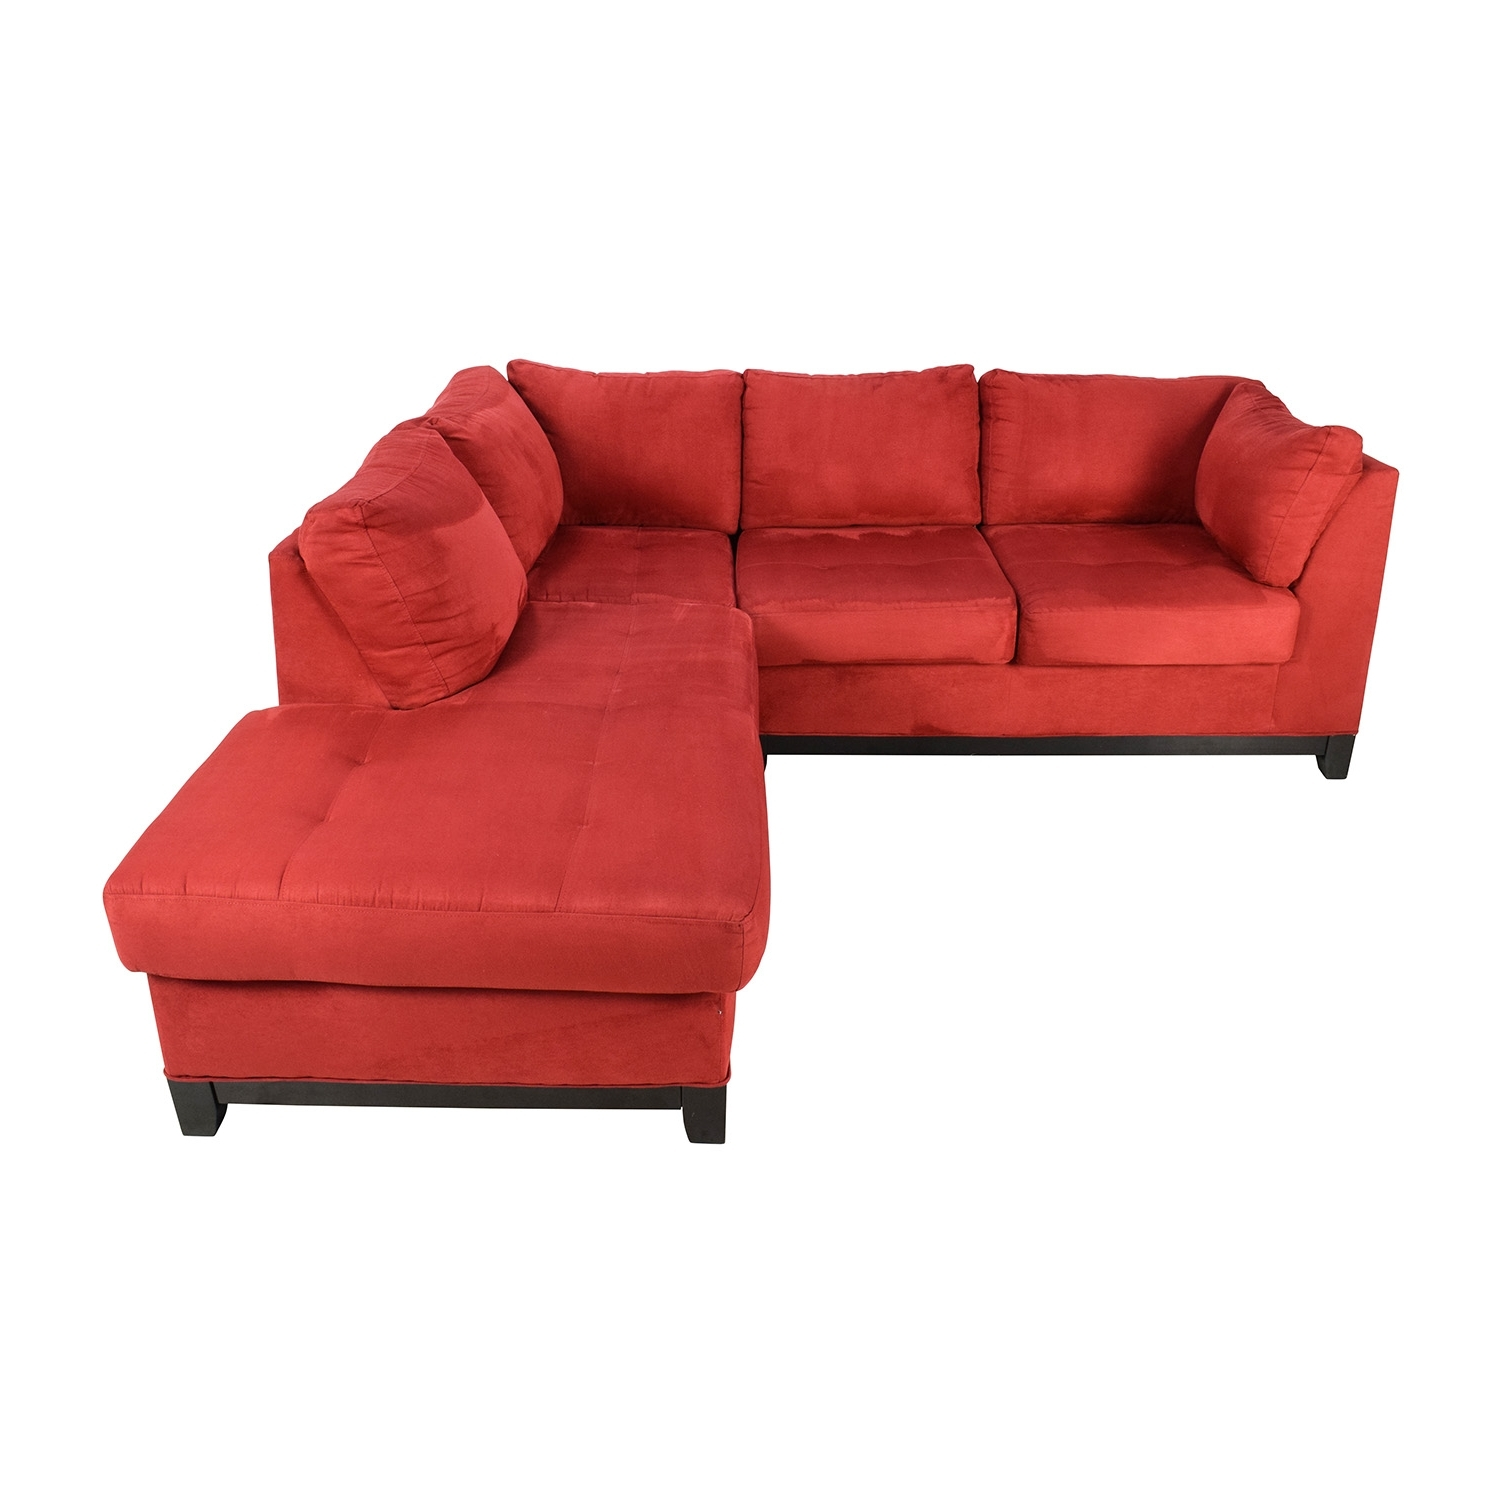 [%67% Off – Raymour And Flanigan Raymour & Flanigan Zella Red Regarding Well Liked Raymour And Flanigan Sectional Sofas|raymour And Flanigan Sectional Sofas Throughout Famous 67% Off – Raymour And Flanigan Raymour & Flanigan Zella Red|most Popular Raymour And Flanigan Sectional Sofas Intended For 67% Off – Raymour And Flanigan Raymour & Flanigan Zella Red|preferred 67% Off – Raymour And Flanigan Raymour & Flanigan Zella Red Regarding Raymour And Flanigan Sectional Sofas%] (View 11 of 20)